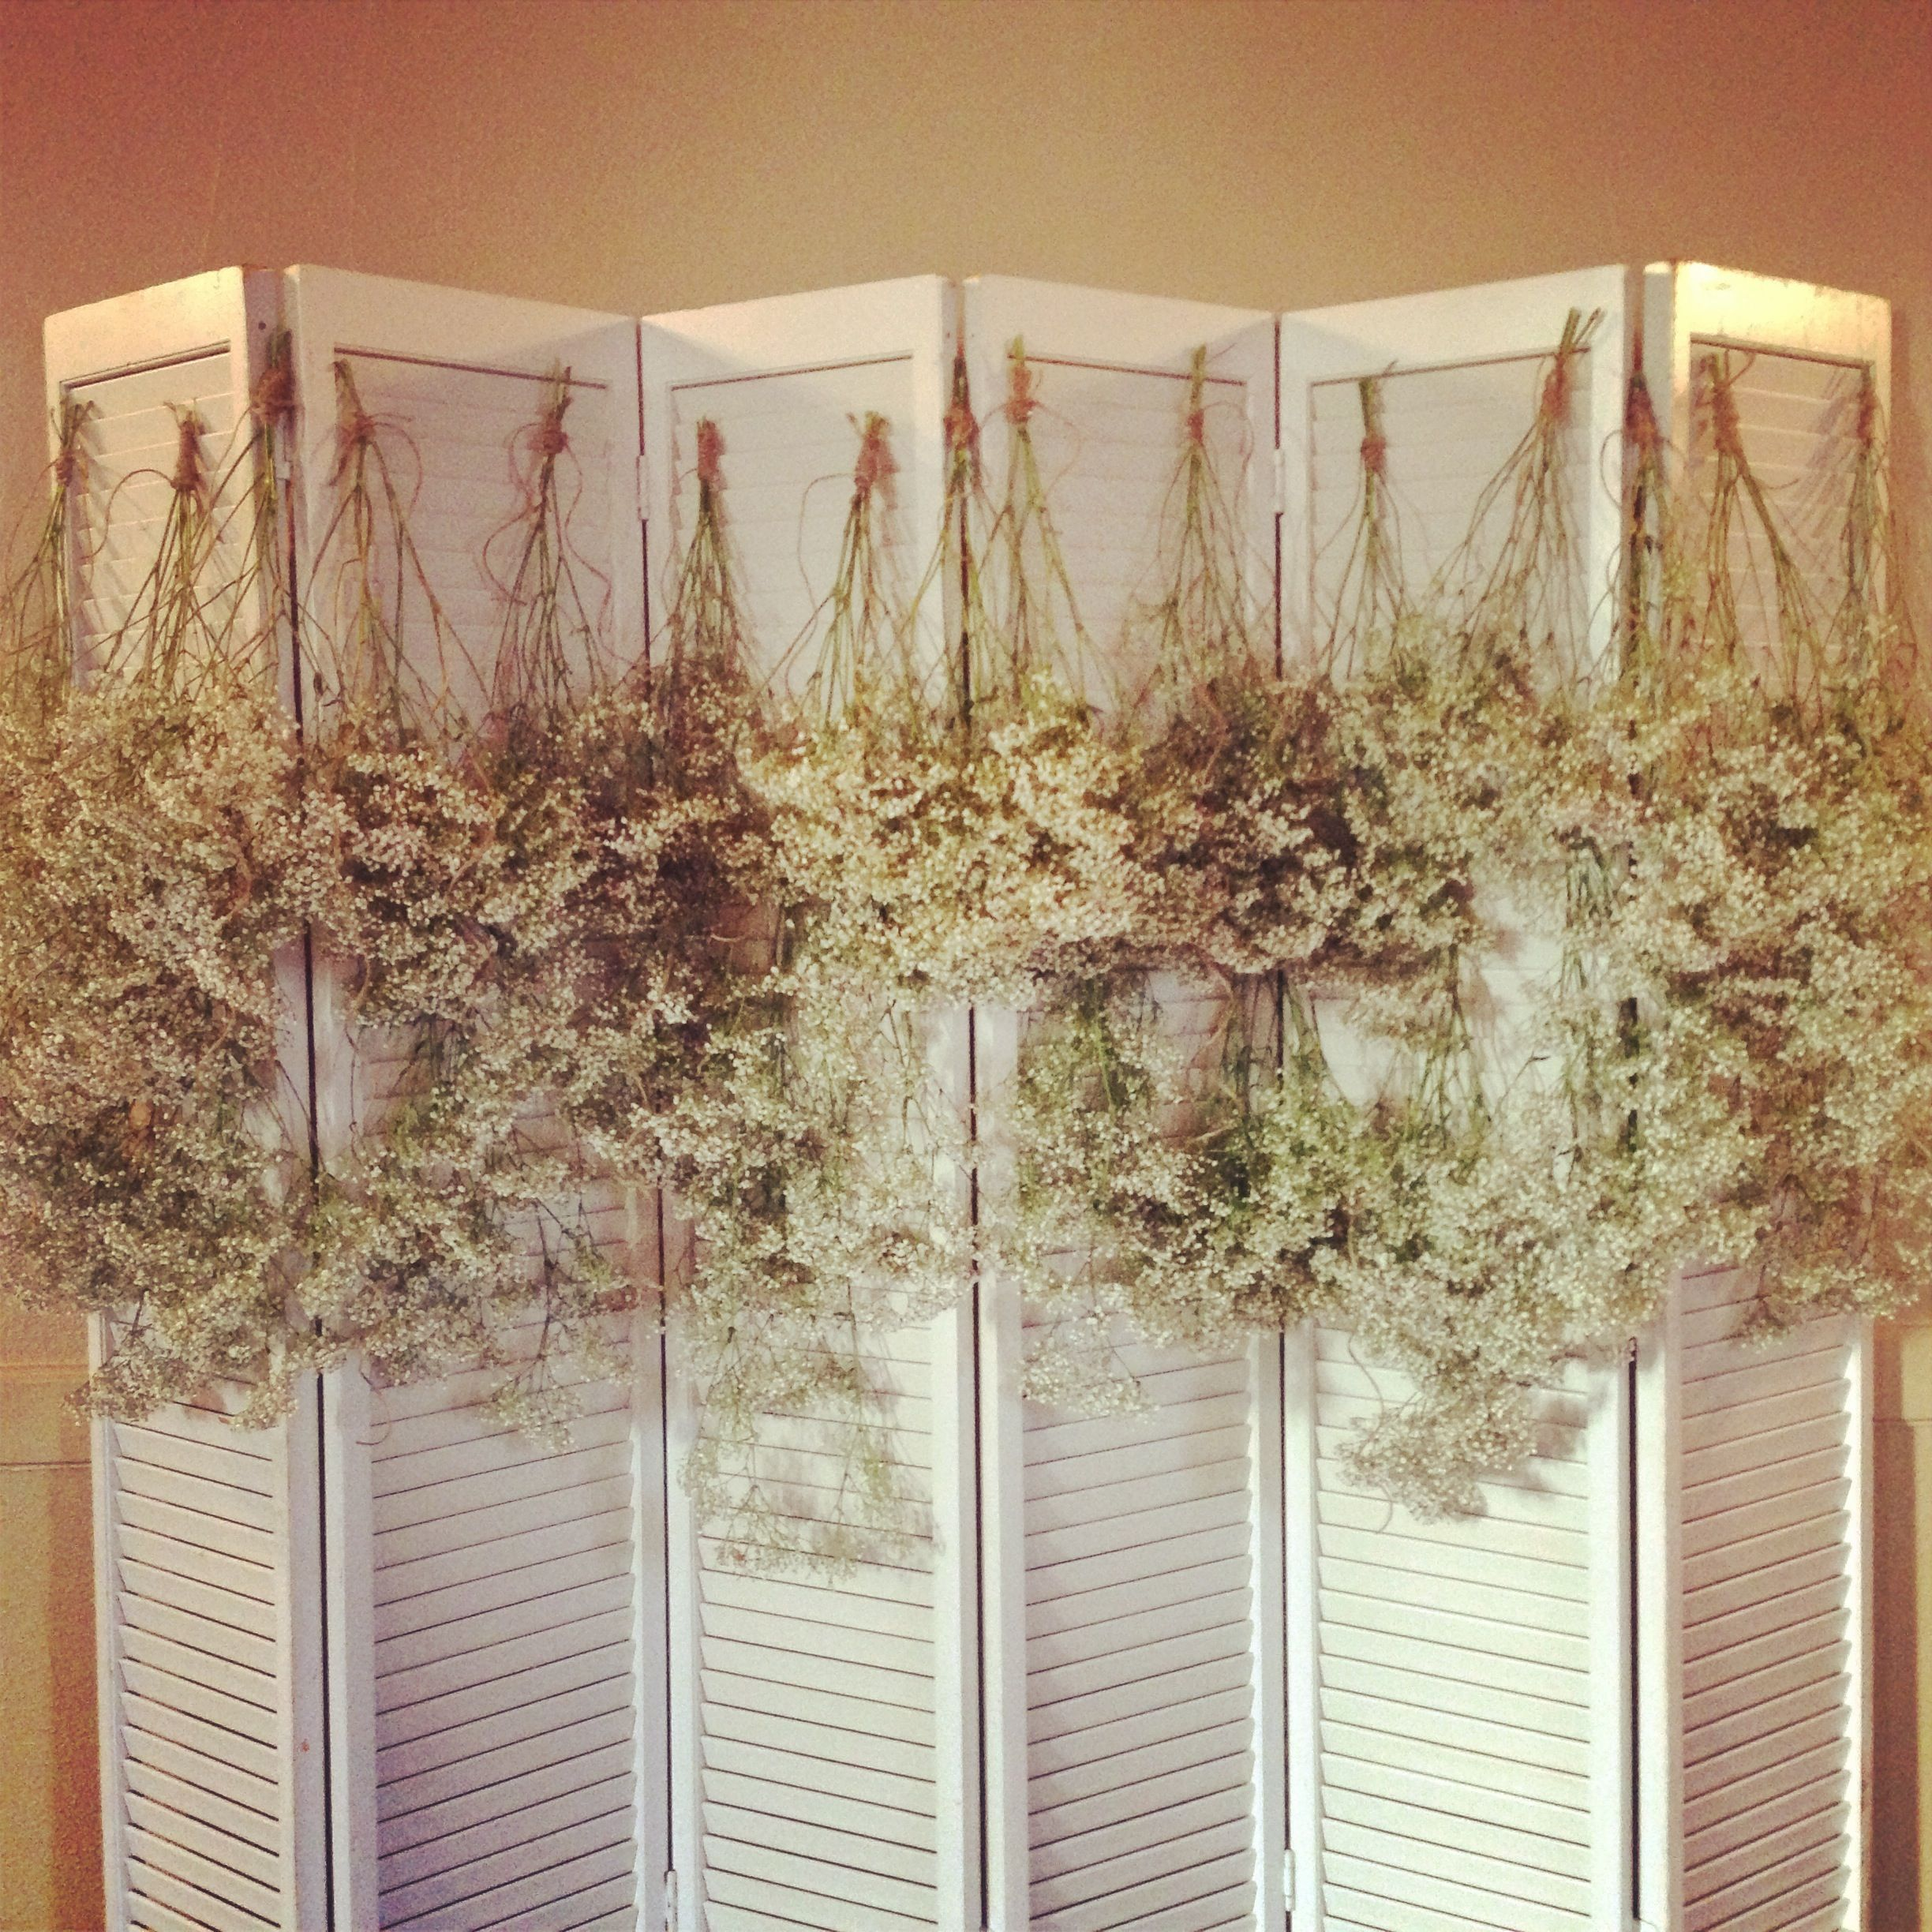 babys breathe and hemp rope used to create a wedding backdrop